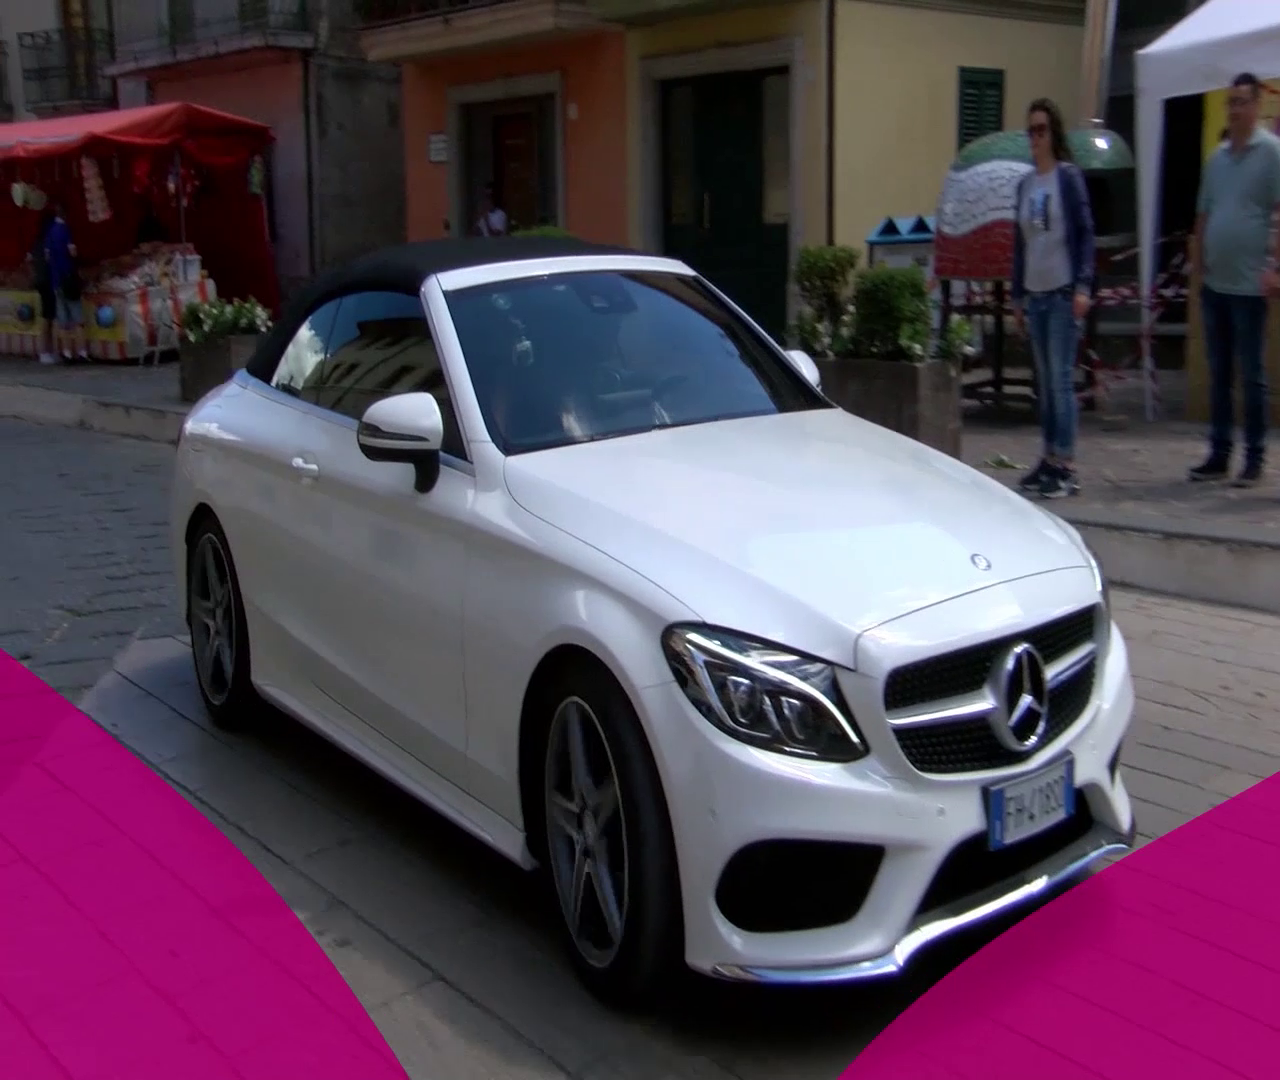 DAG AUTO TOUR 2017 IN TV. LE BELLEZZE MERCEDES BENZ IN VETRINA. SI PARTE DA VOLTURARA ALLE 14.40